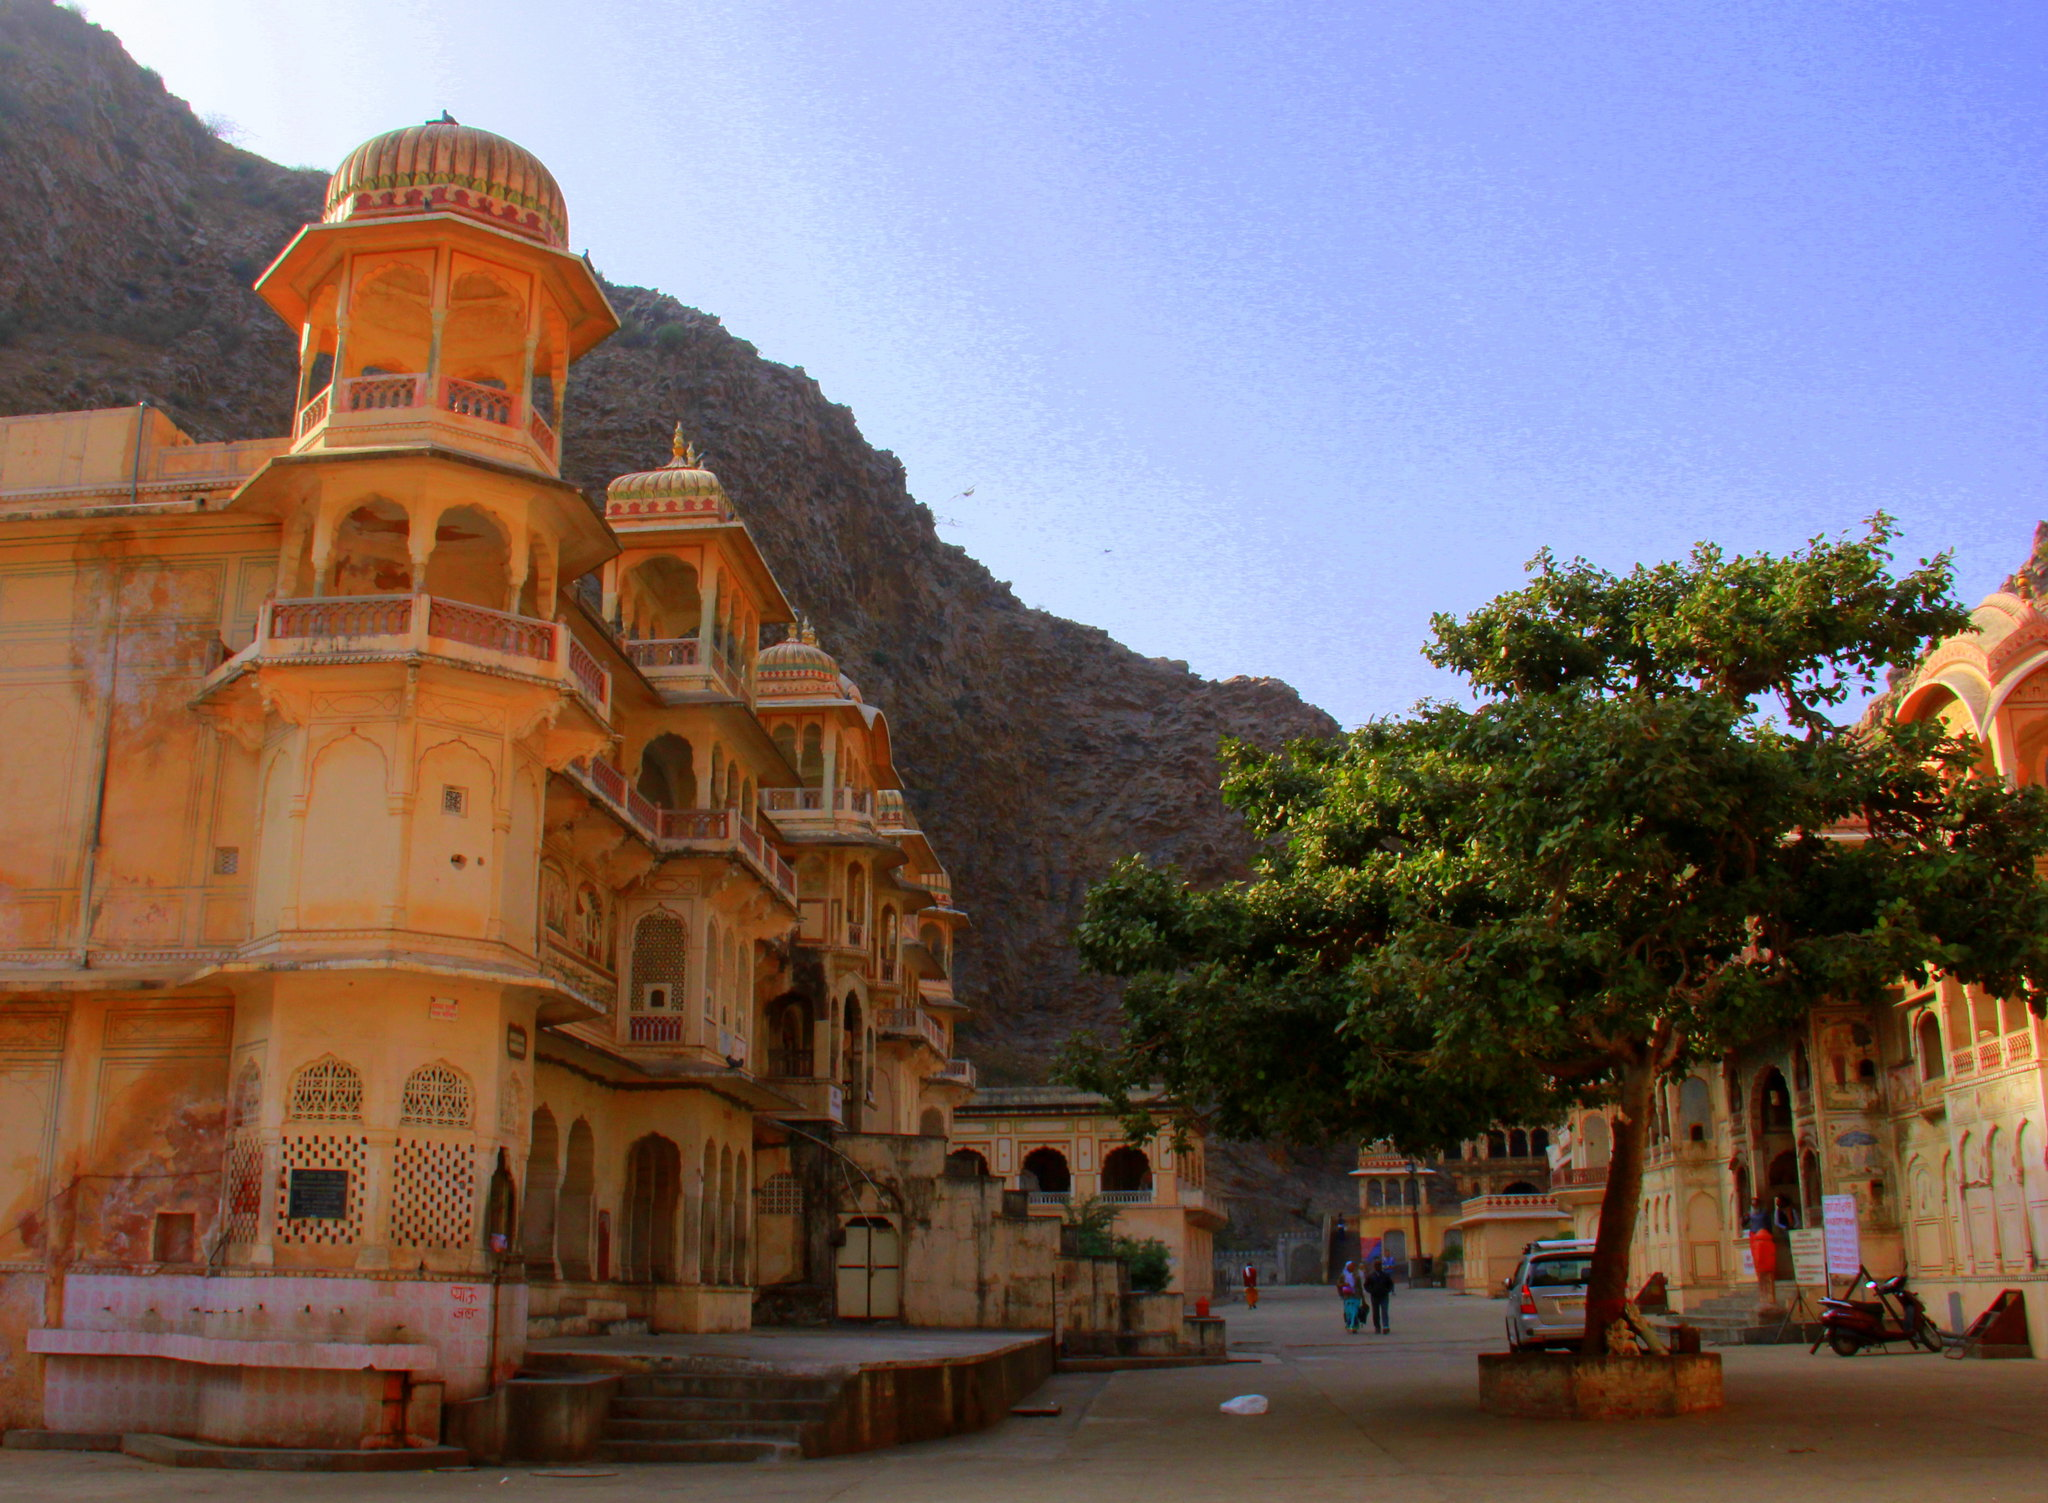 Galtaji temple is in Jaipur